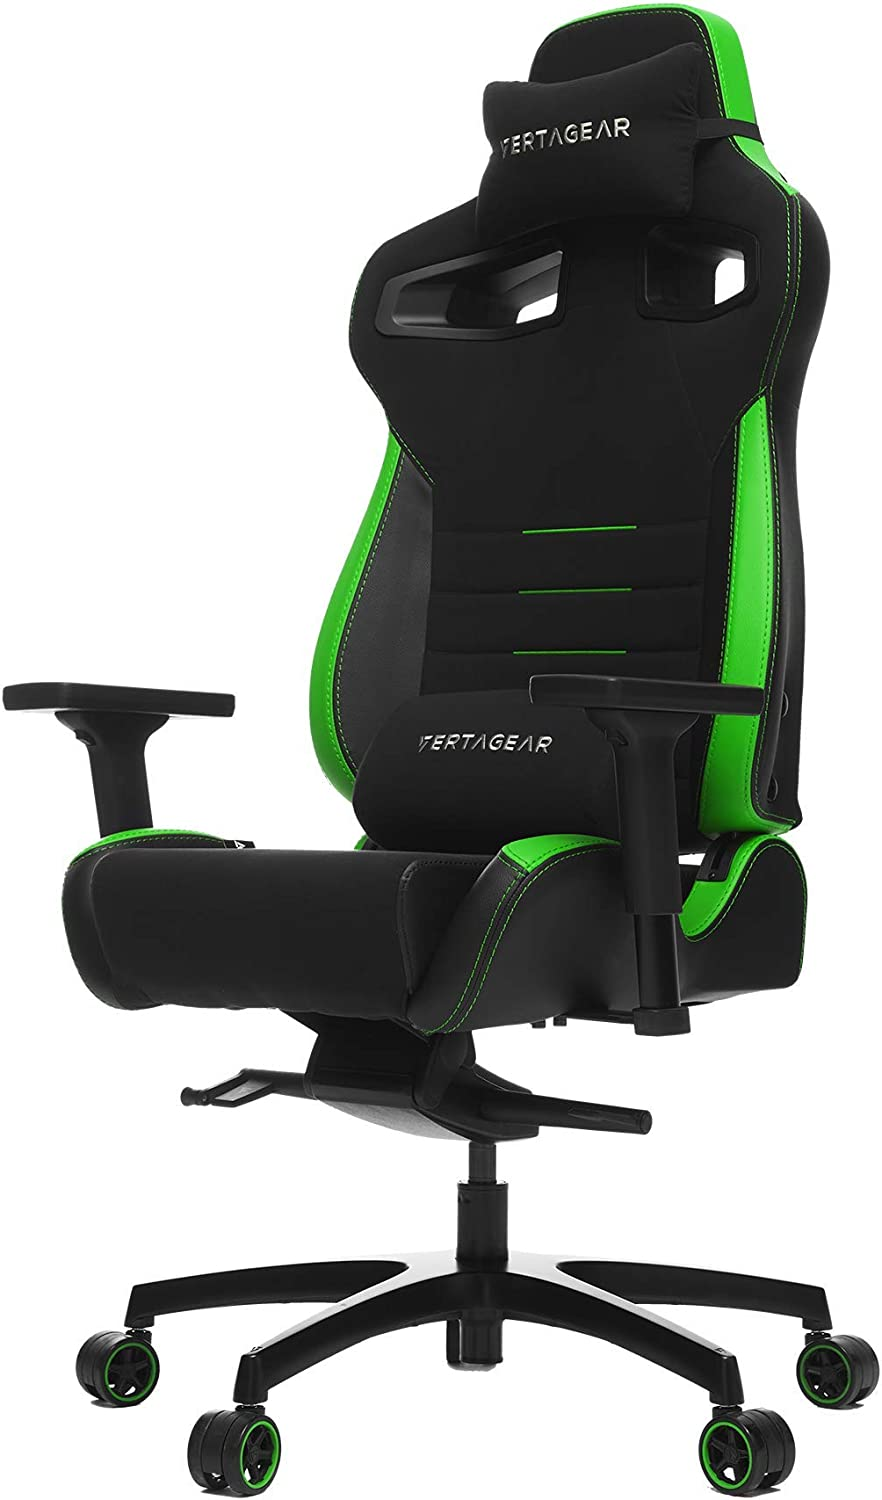 Vertagear Gaming Racing Seat Home Office Computer Coffee Fiber High Back Executive Chairs, Black/Green